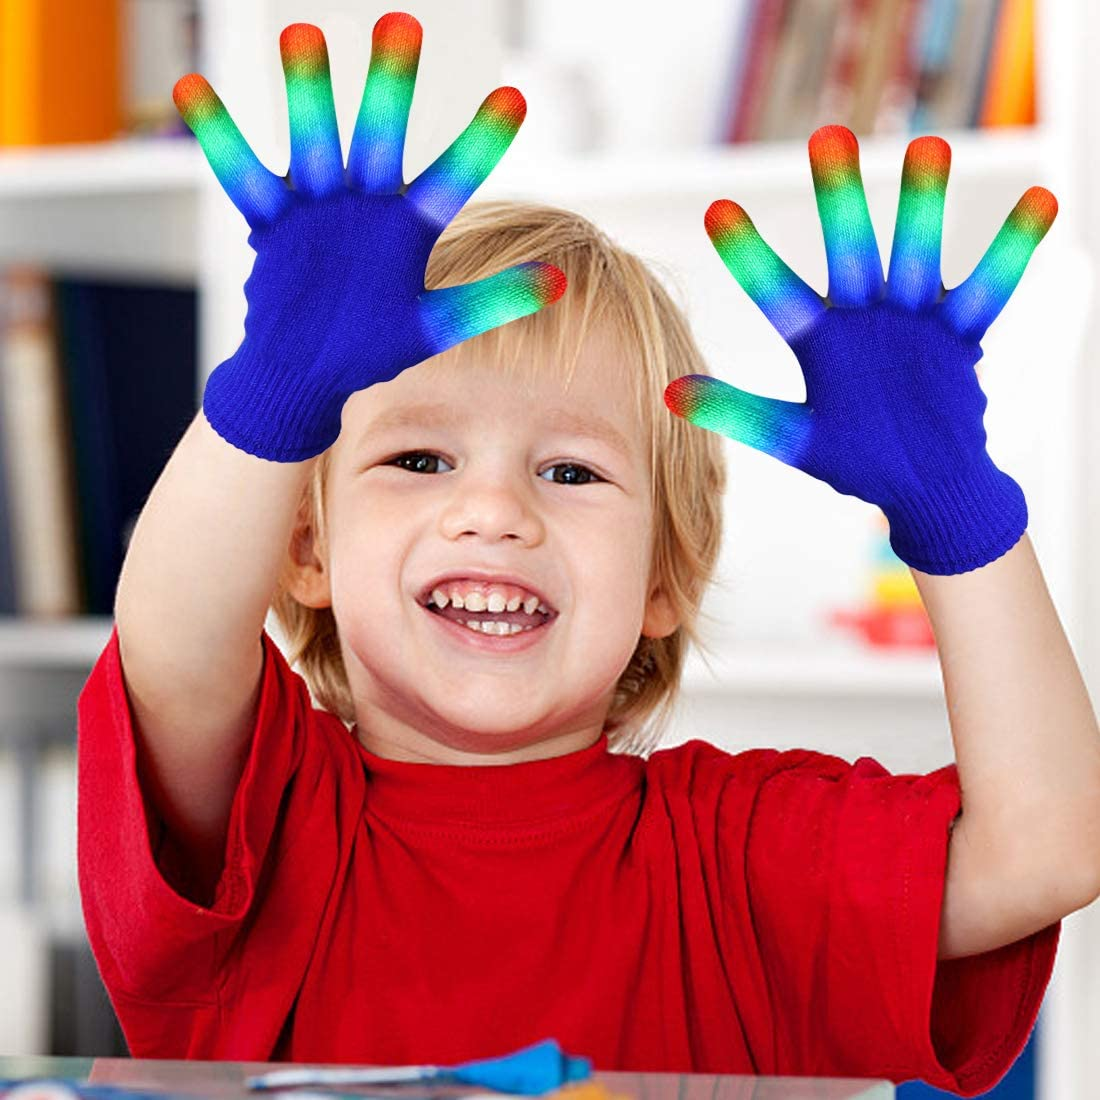 Green and Red Black, Small Flashing Light Up Kids Size Small Black Gloves LED Finger Light Gloves Cool Fun Toys 6 Modes Super Bright LEDs Blue